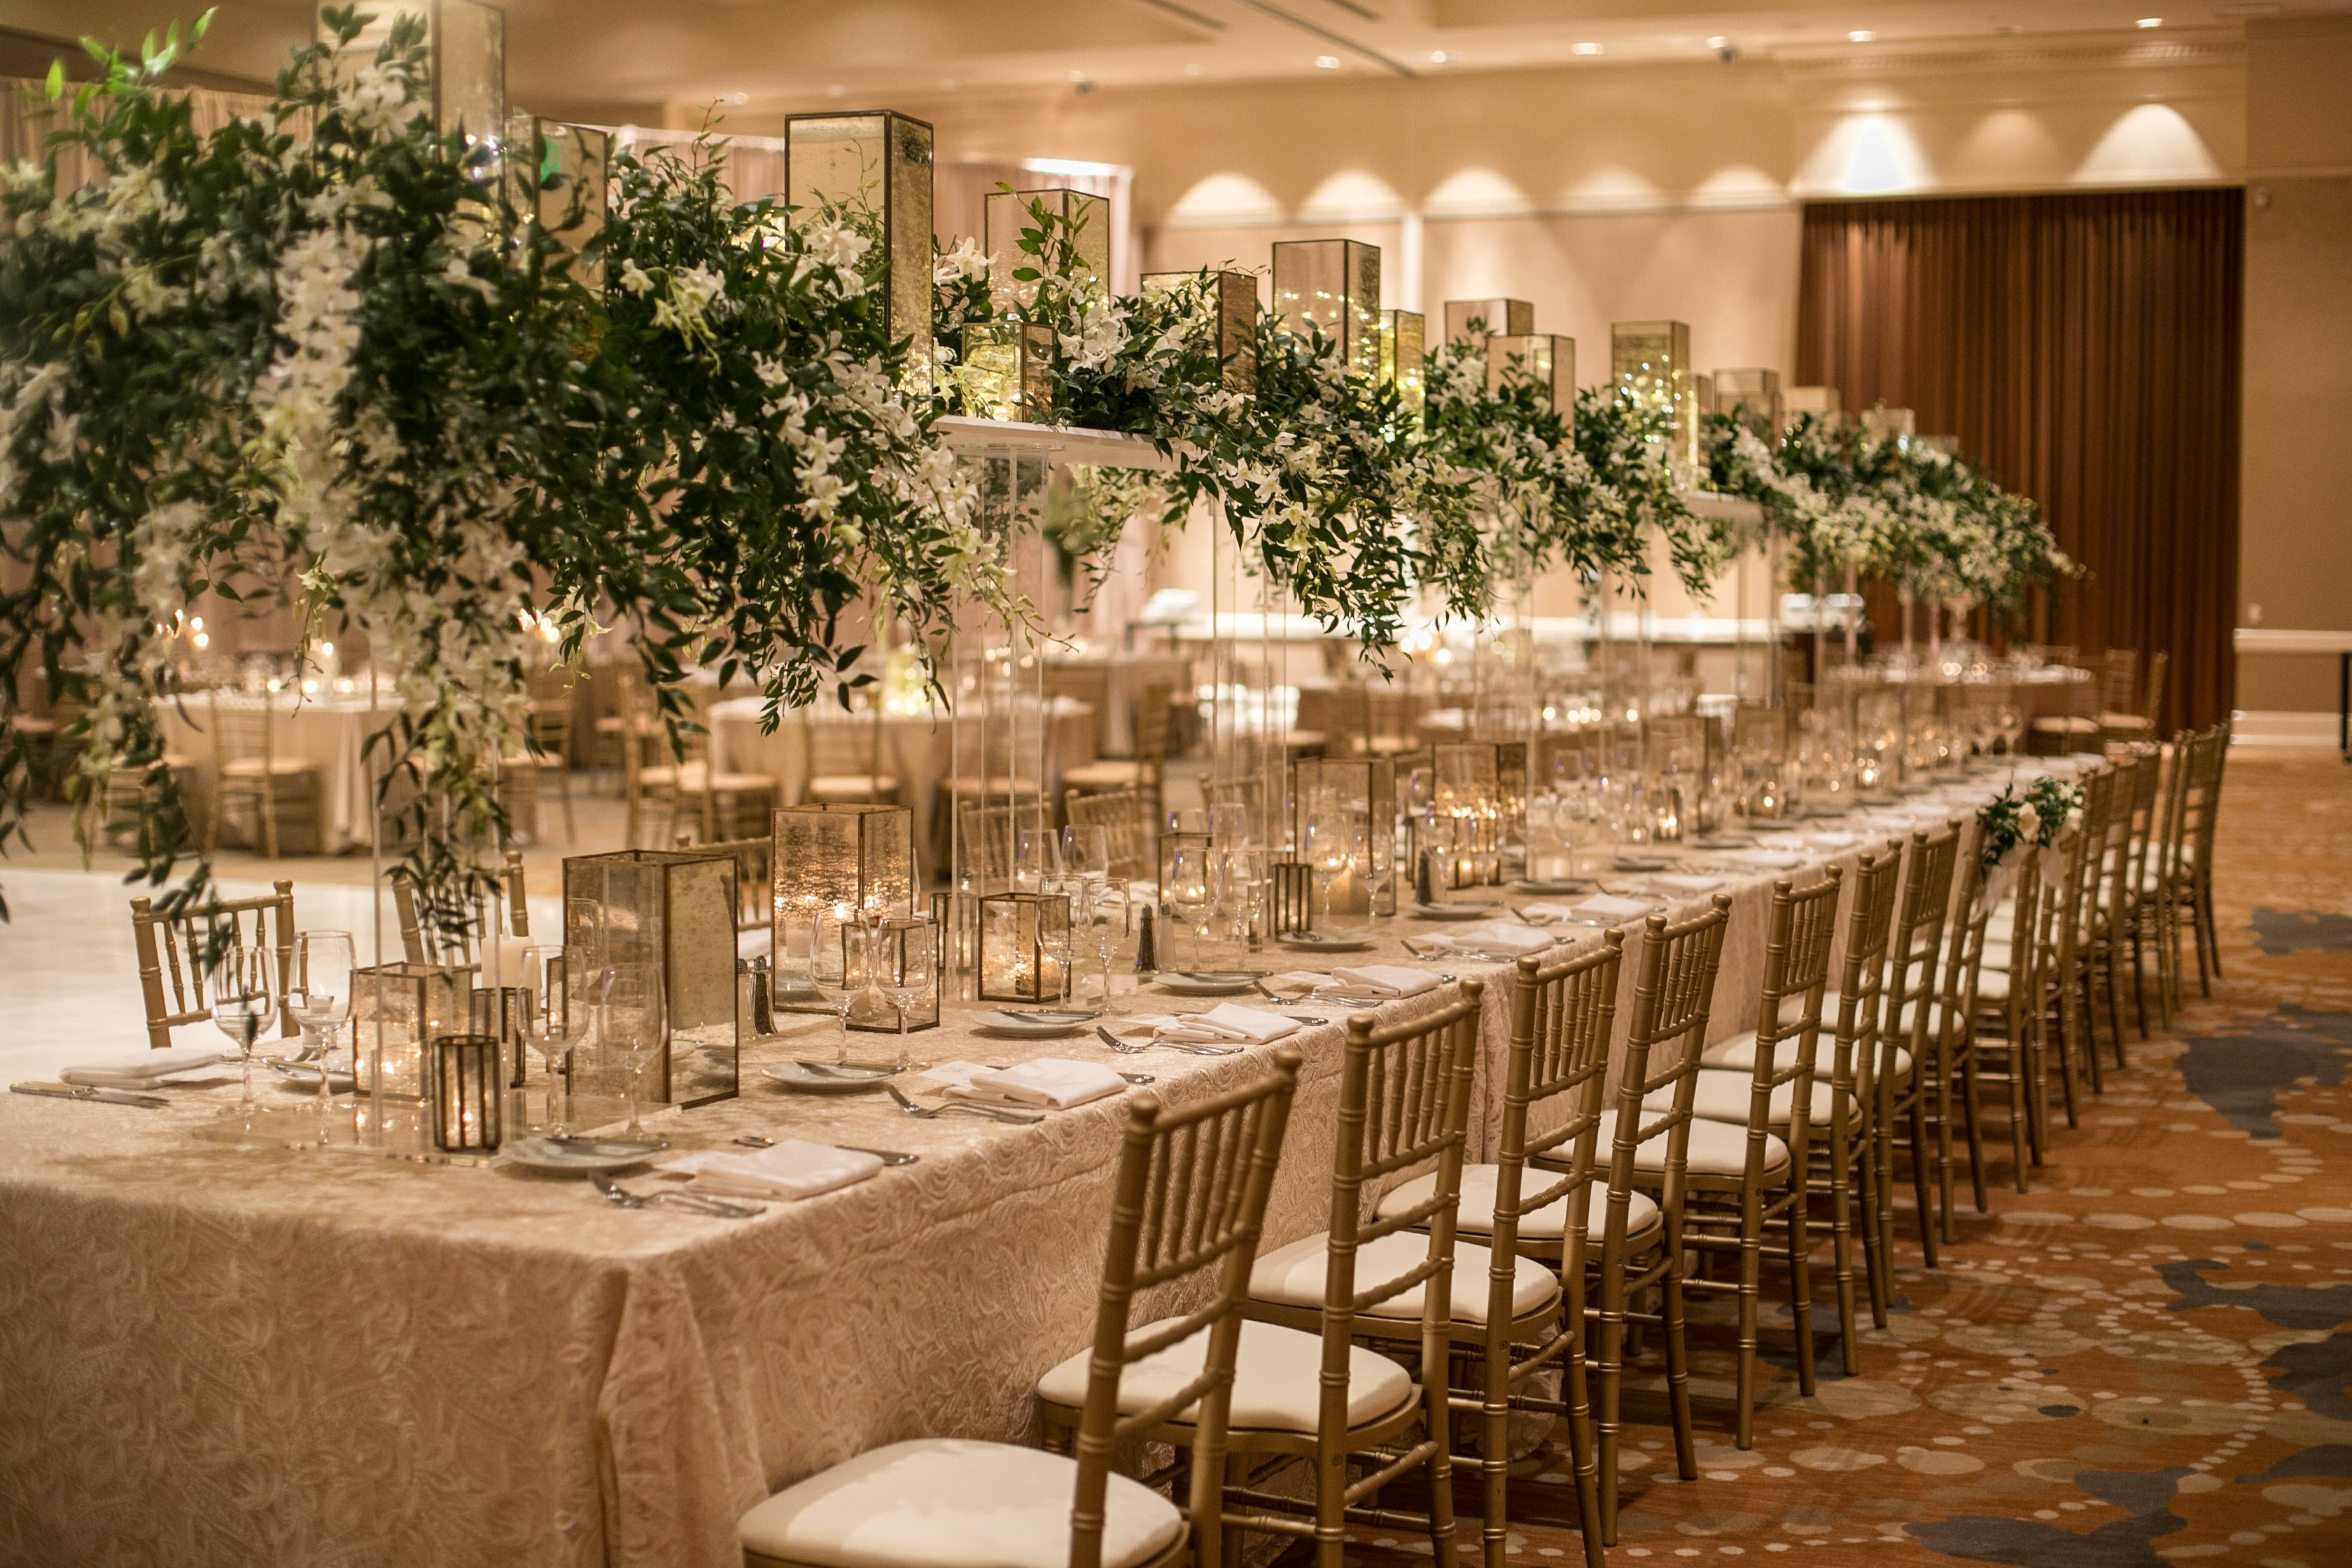 Wedding Head Estate Table from top Atlanta Wedding Floral & Event Designer, Topher Mack Floral & Events from Chris Macksey